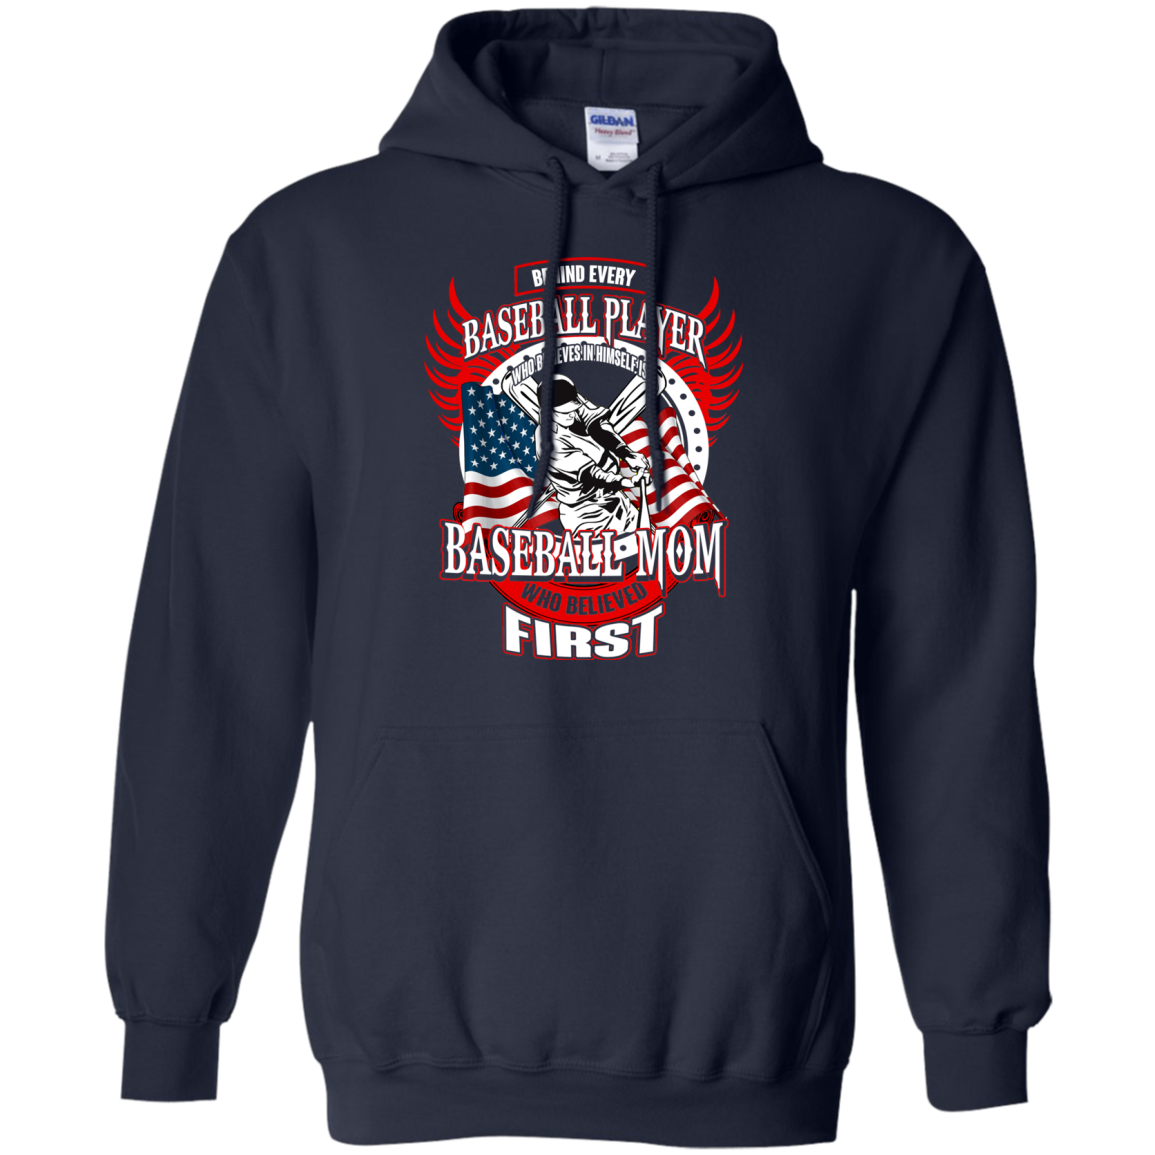 Baseball T shirts Behind Every Player Is A Baseball Mom Hoodies Sweatshirts TH